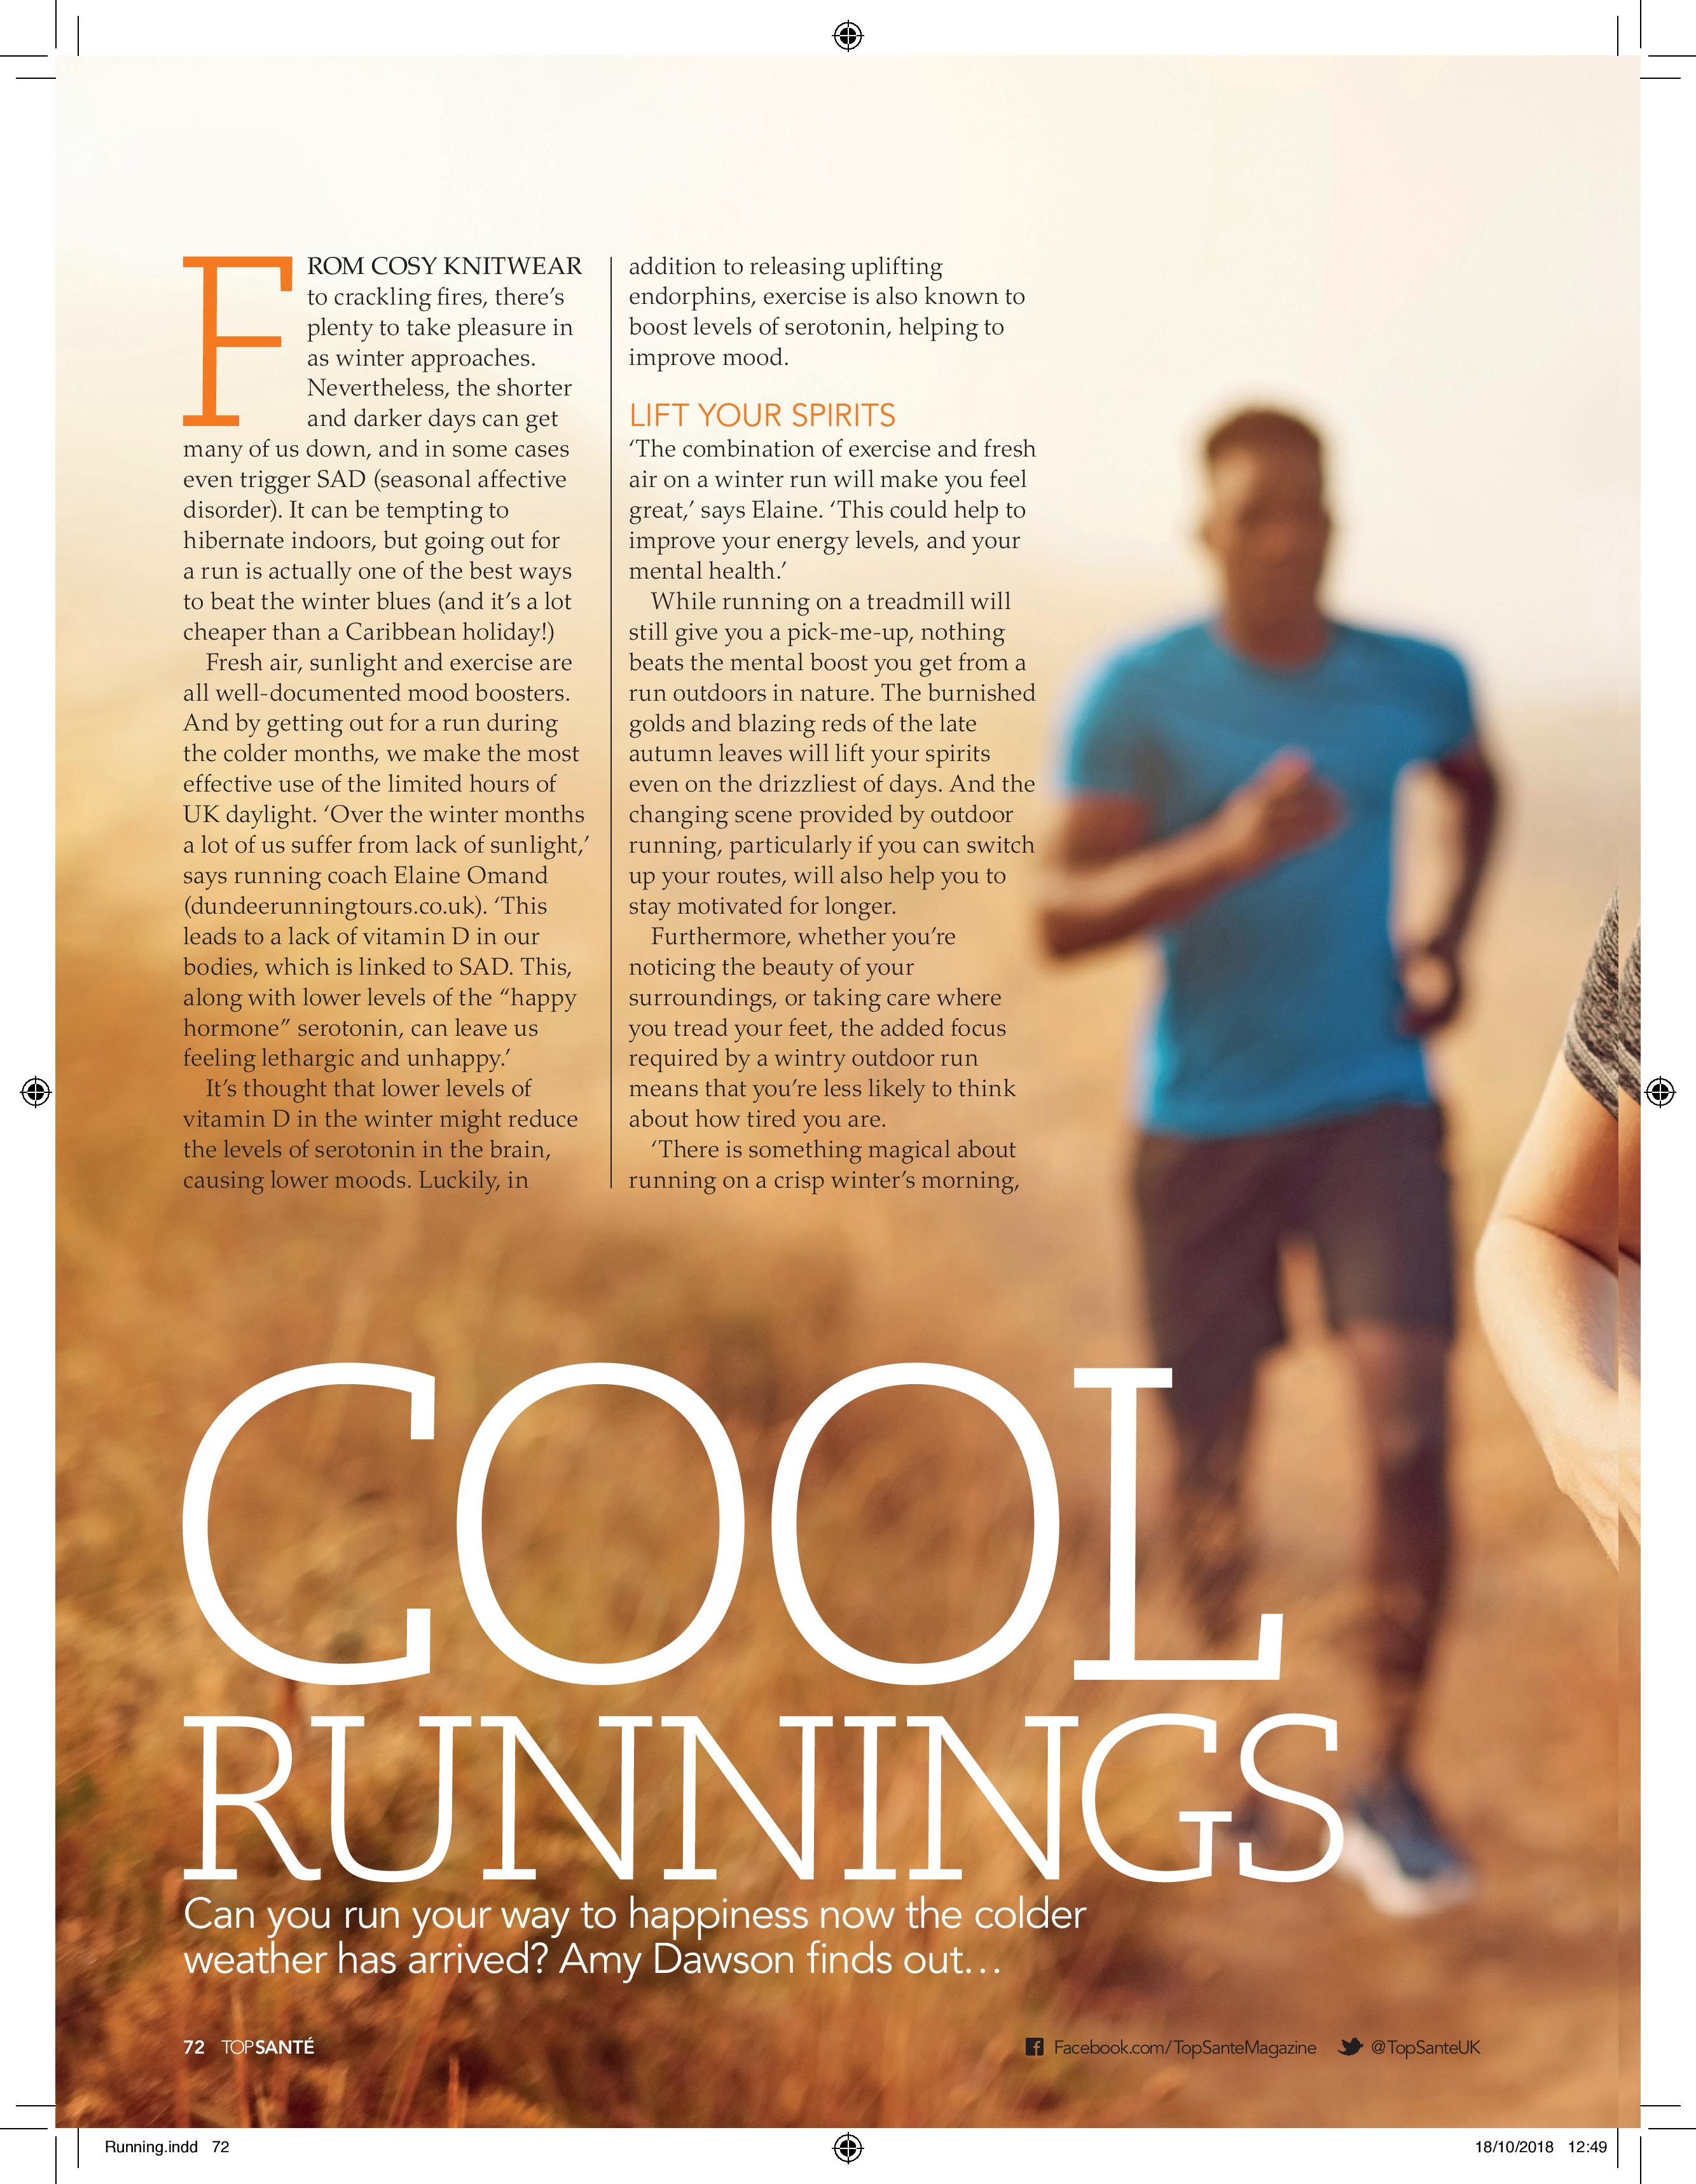 Cool Runnings (Top Sante, 30th Oct 2018)